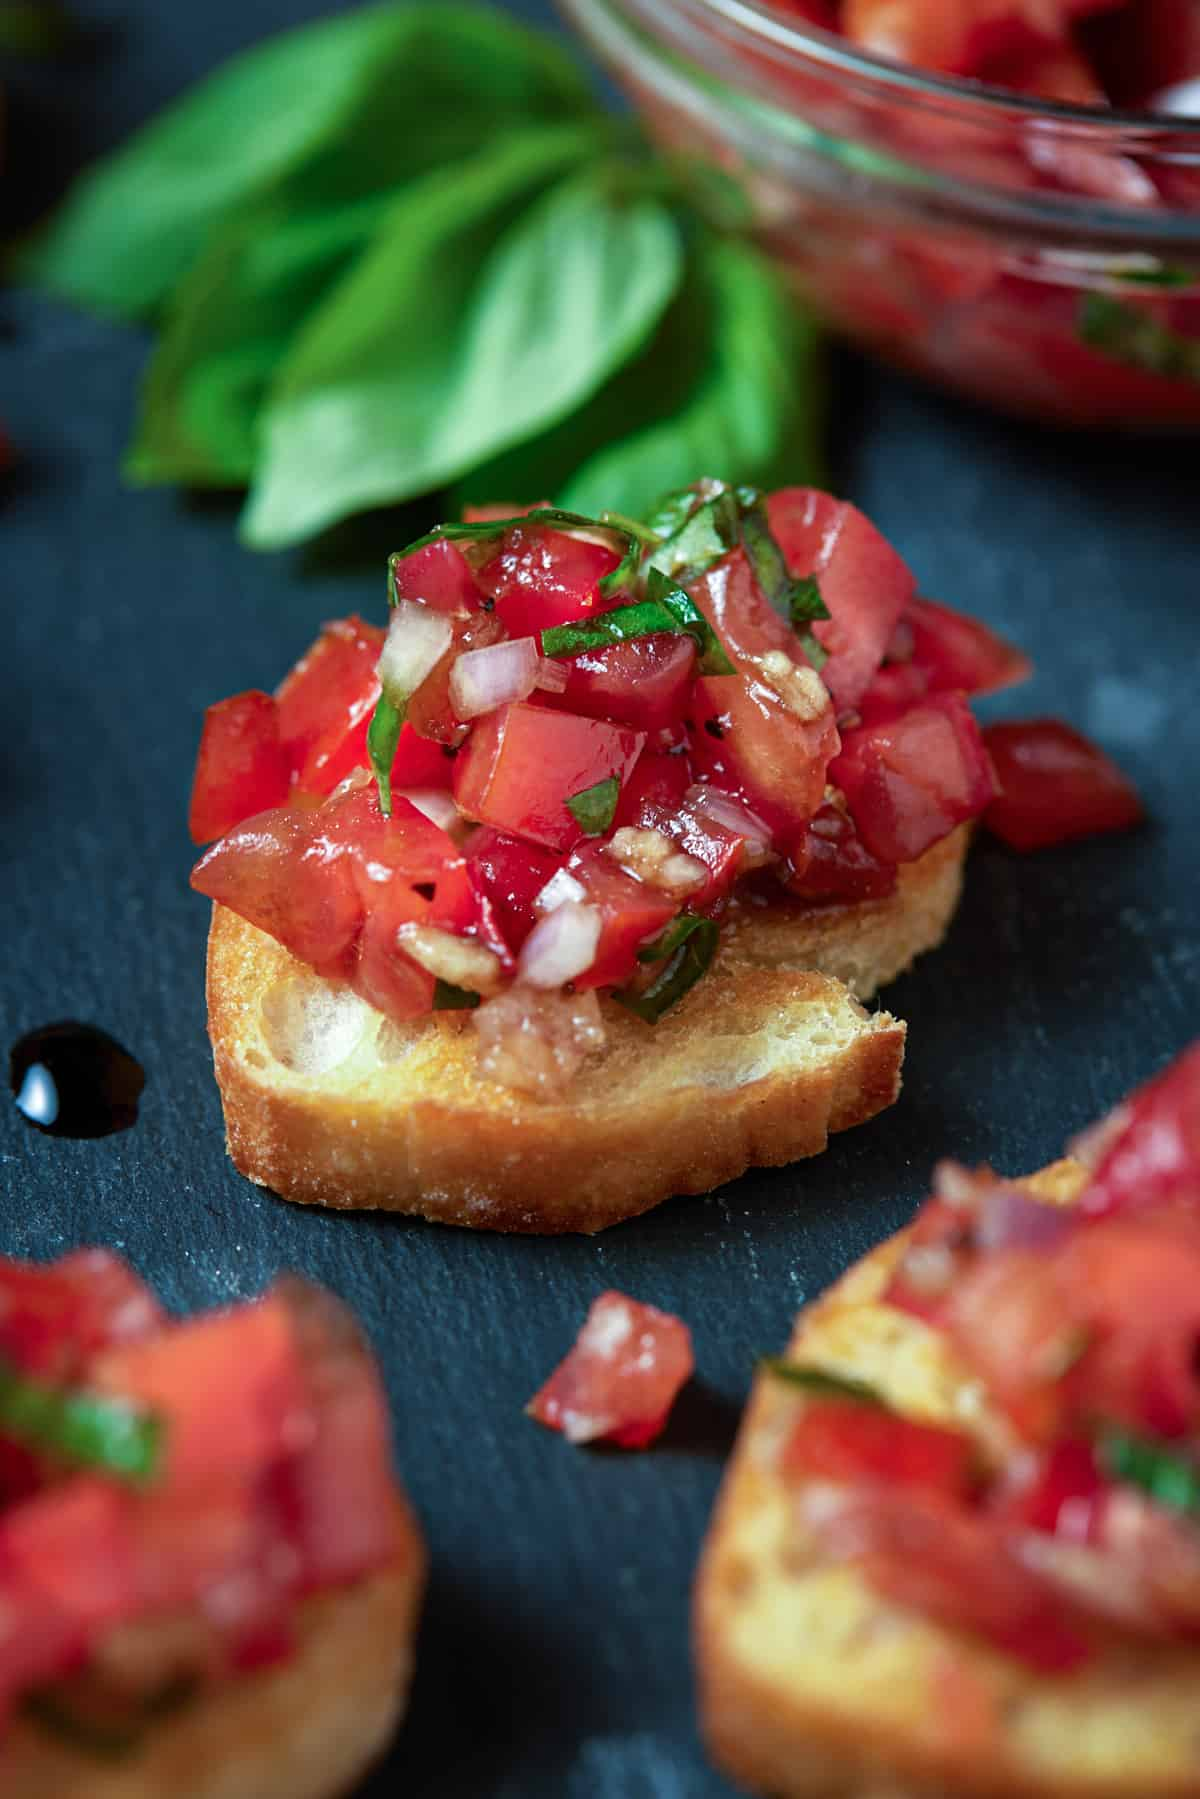 diced tomatoes on crostini with balsamic glaze.